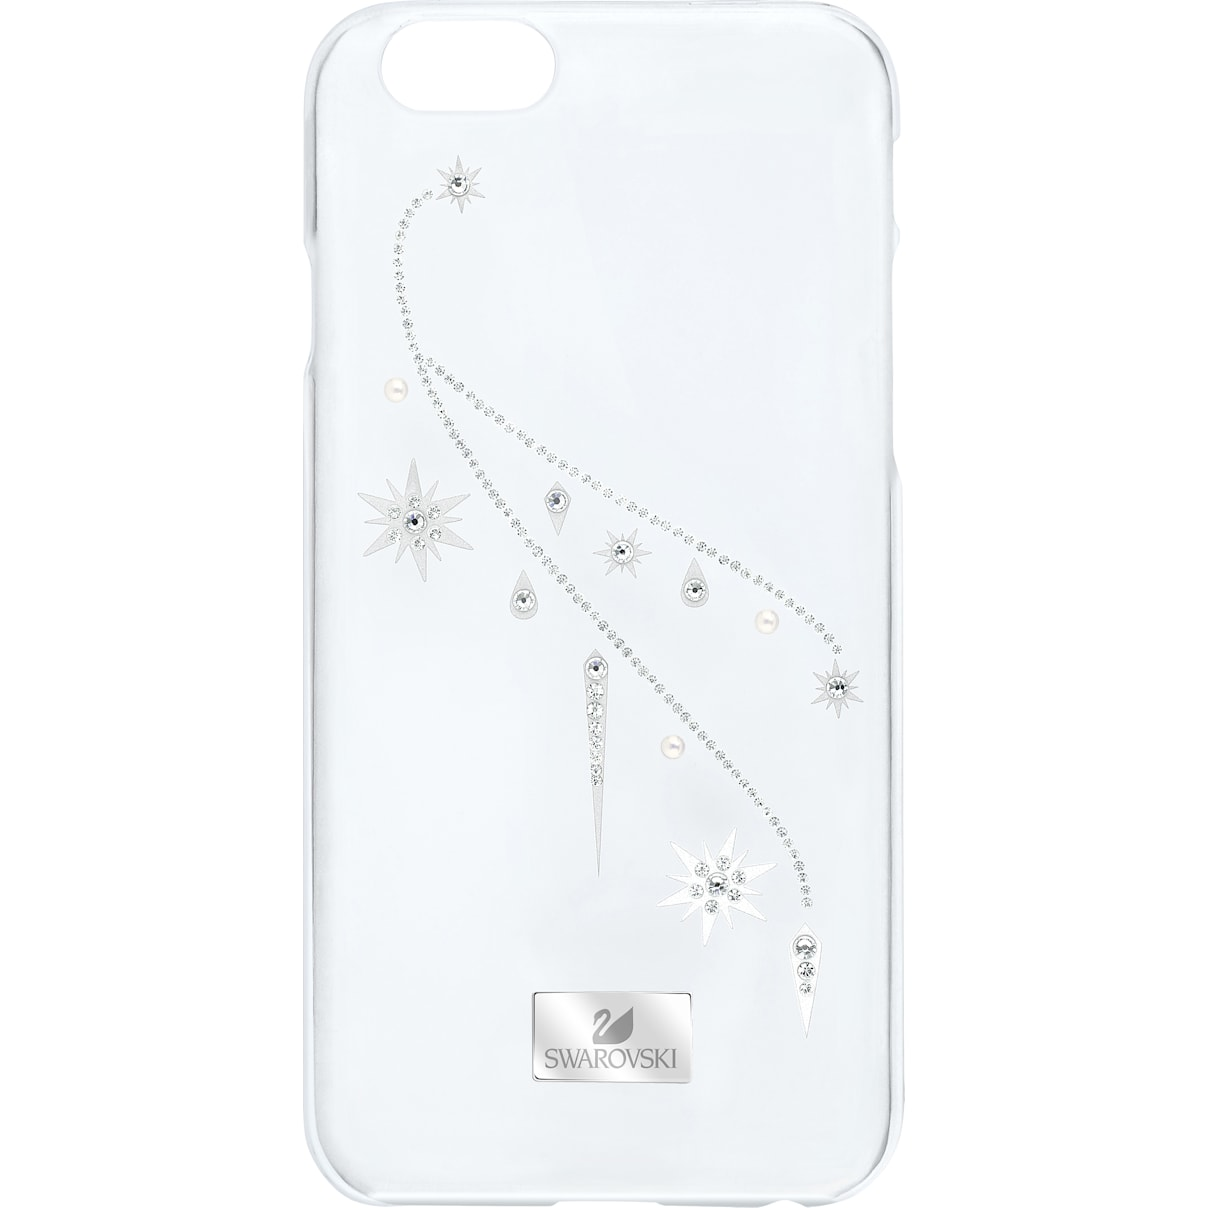 Swarovski Fantastic Smartphone Case, iPhone® 6/6s